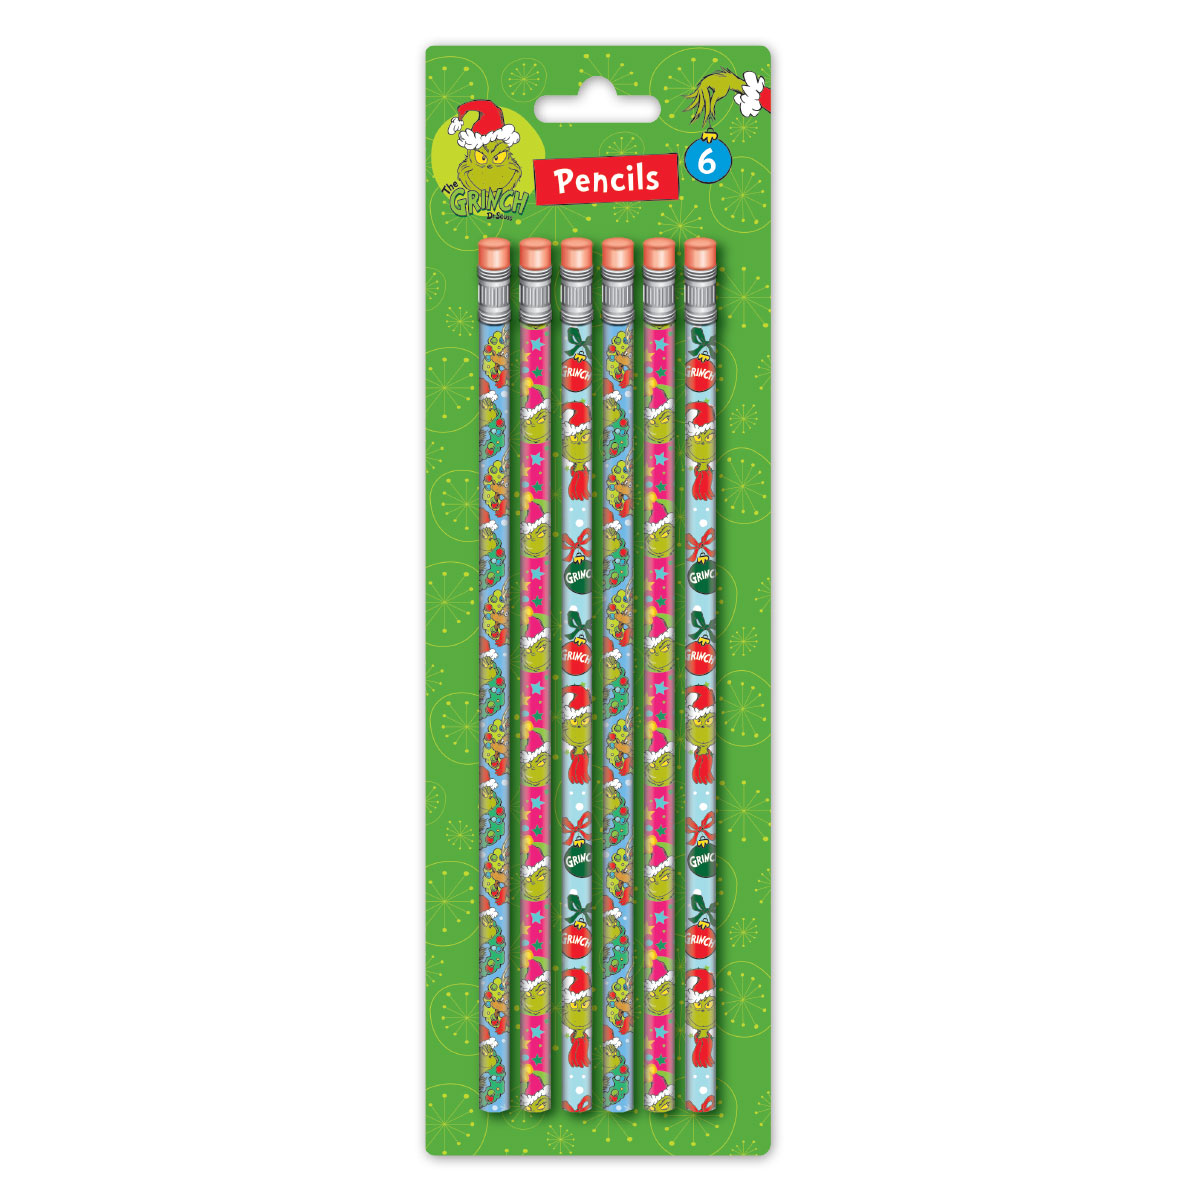 Grinch 6 Count Pencils